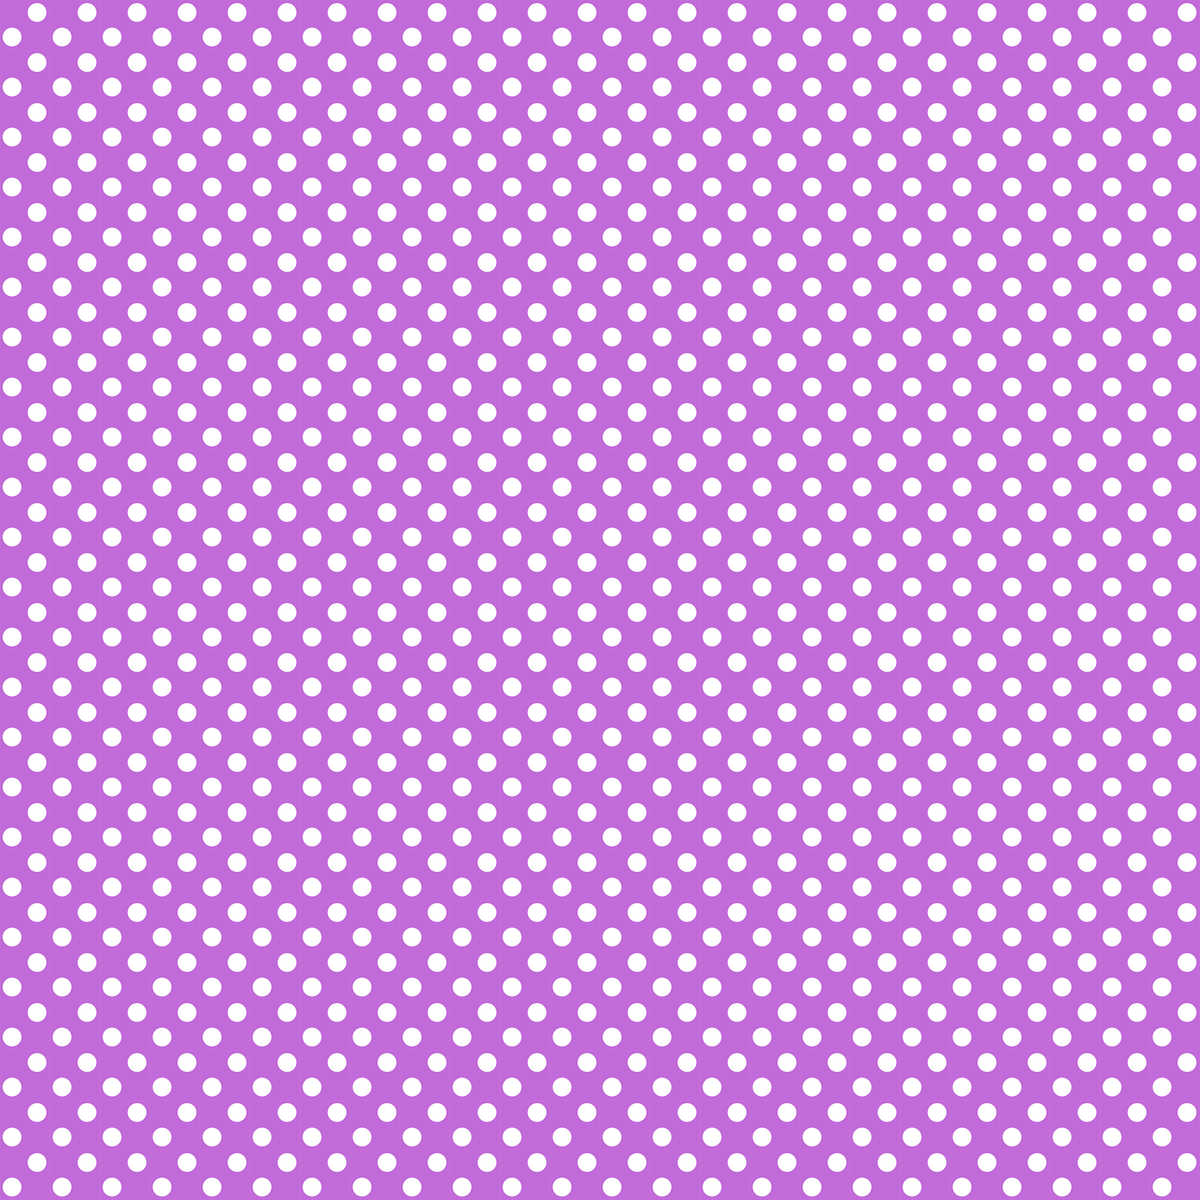 Free Digital Polka Dot Scrapbooking Papers  Pnktchenpapier